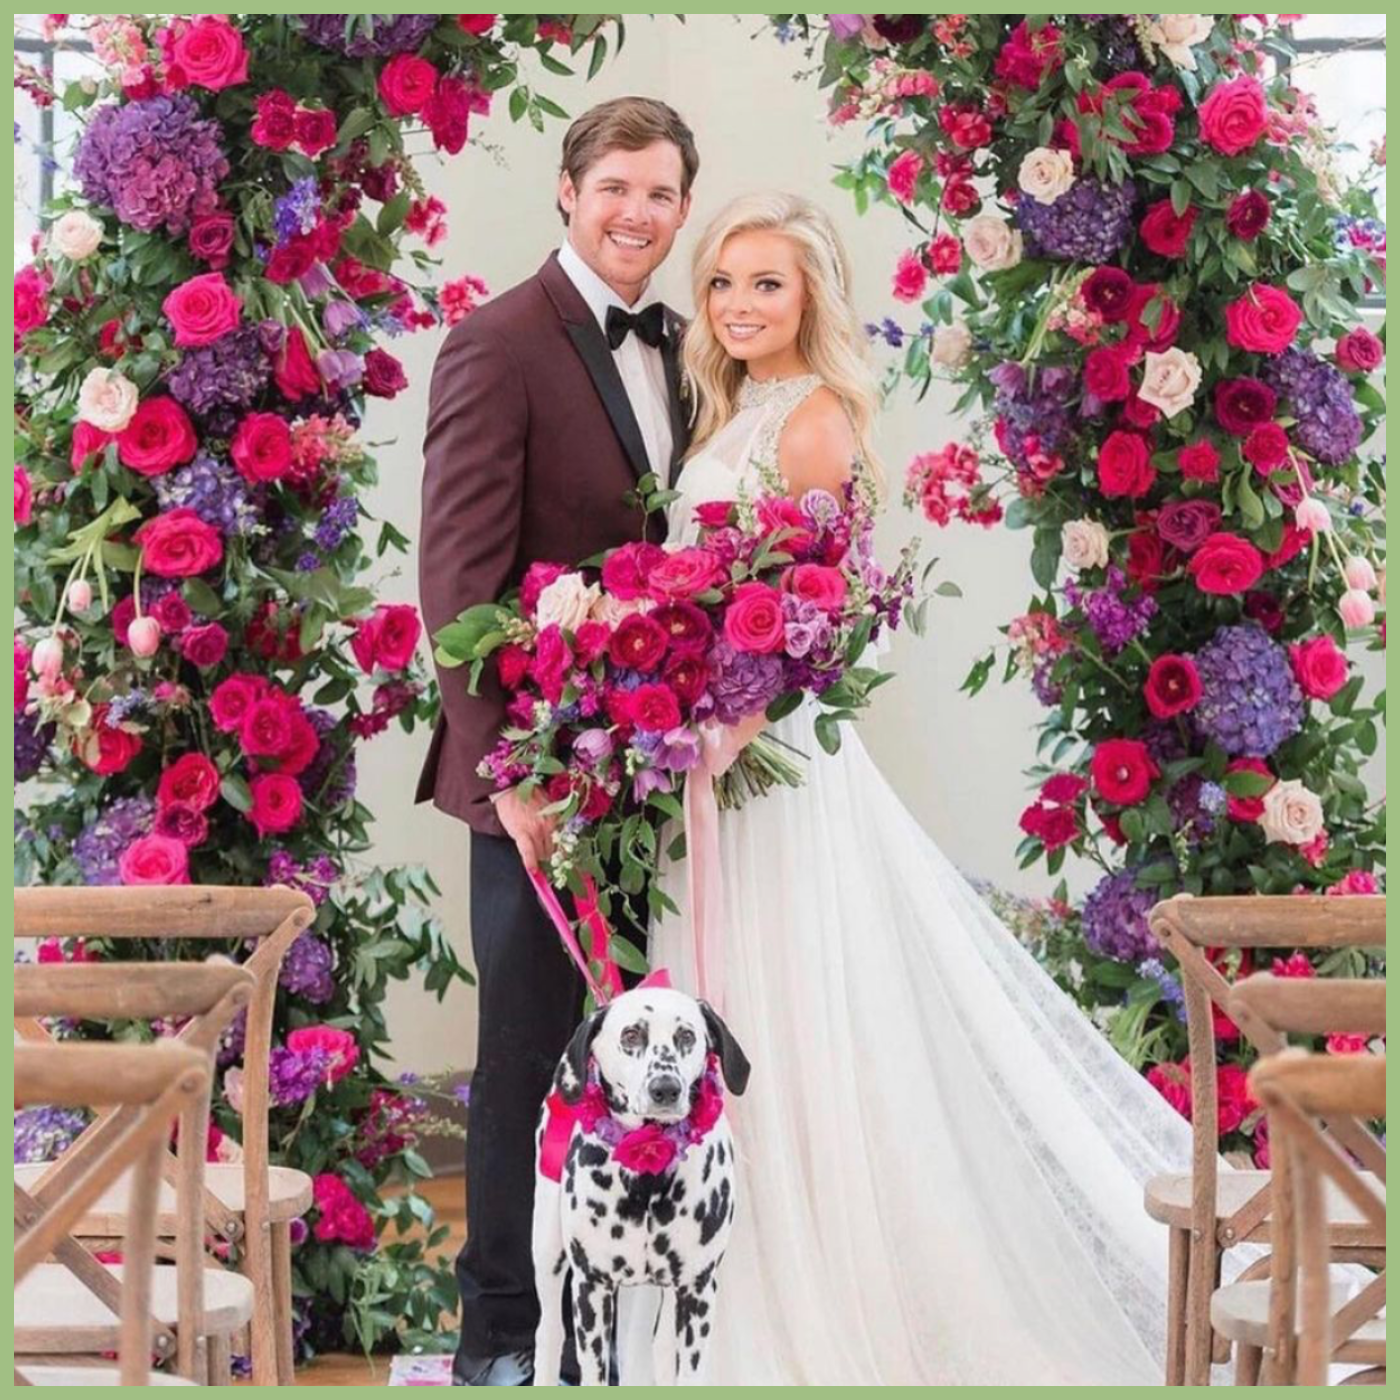 bride and groom at wedding arch with pink flowers and dog with pink flower necklace